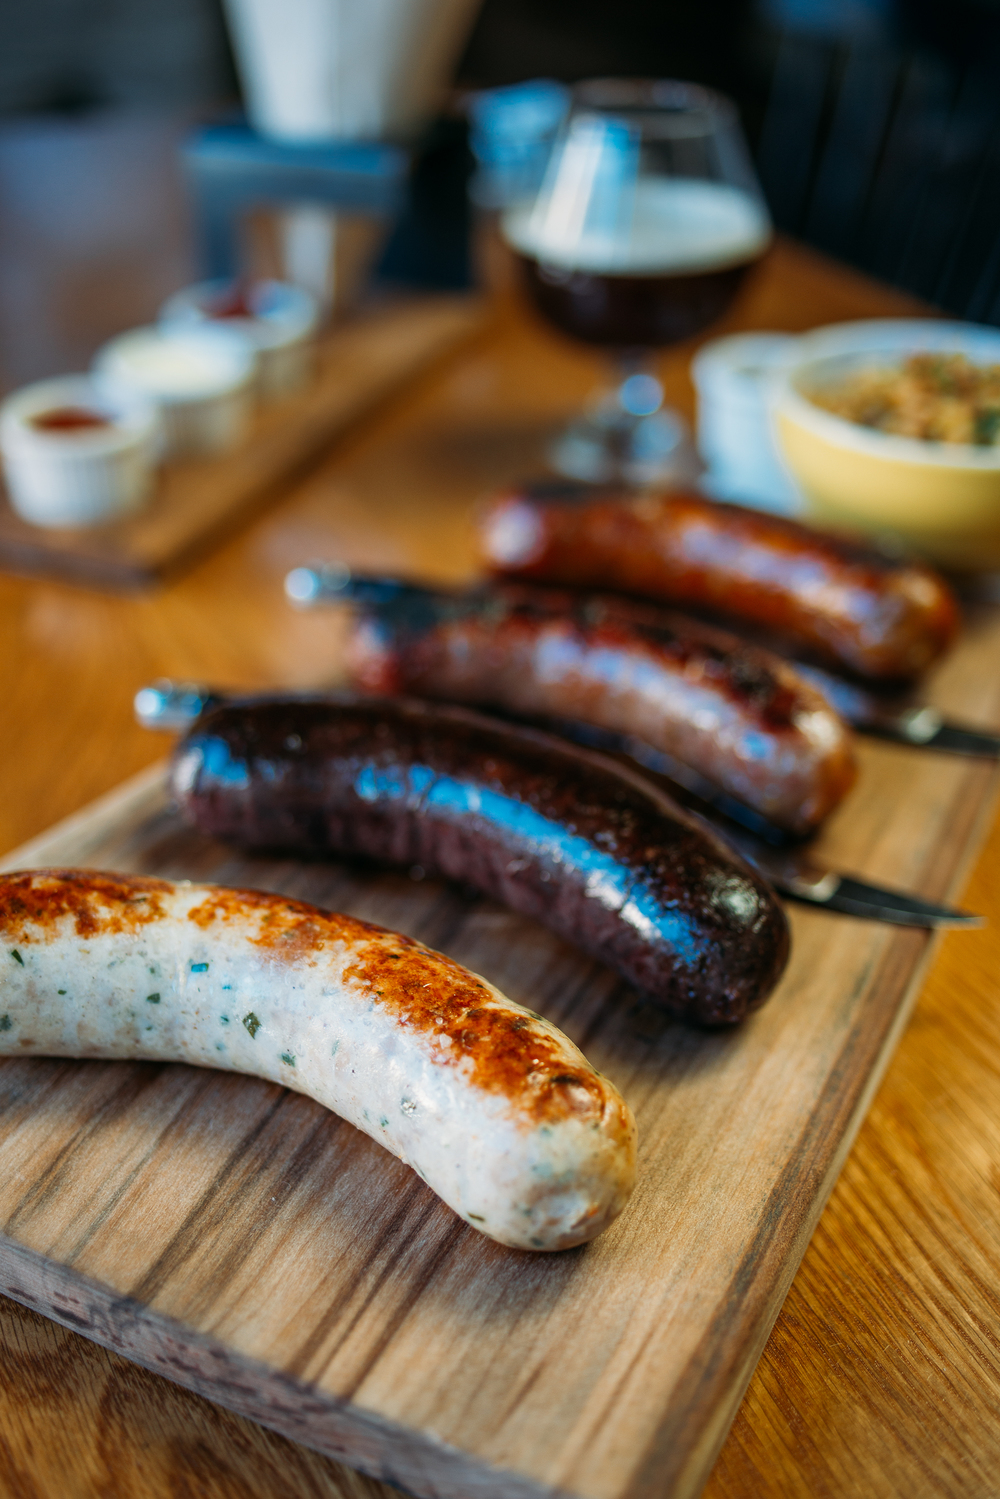 House-made Sausages: Currywurst, Chicken sausage, Cherry-duck sausage